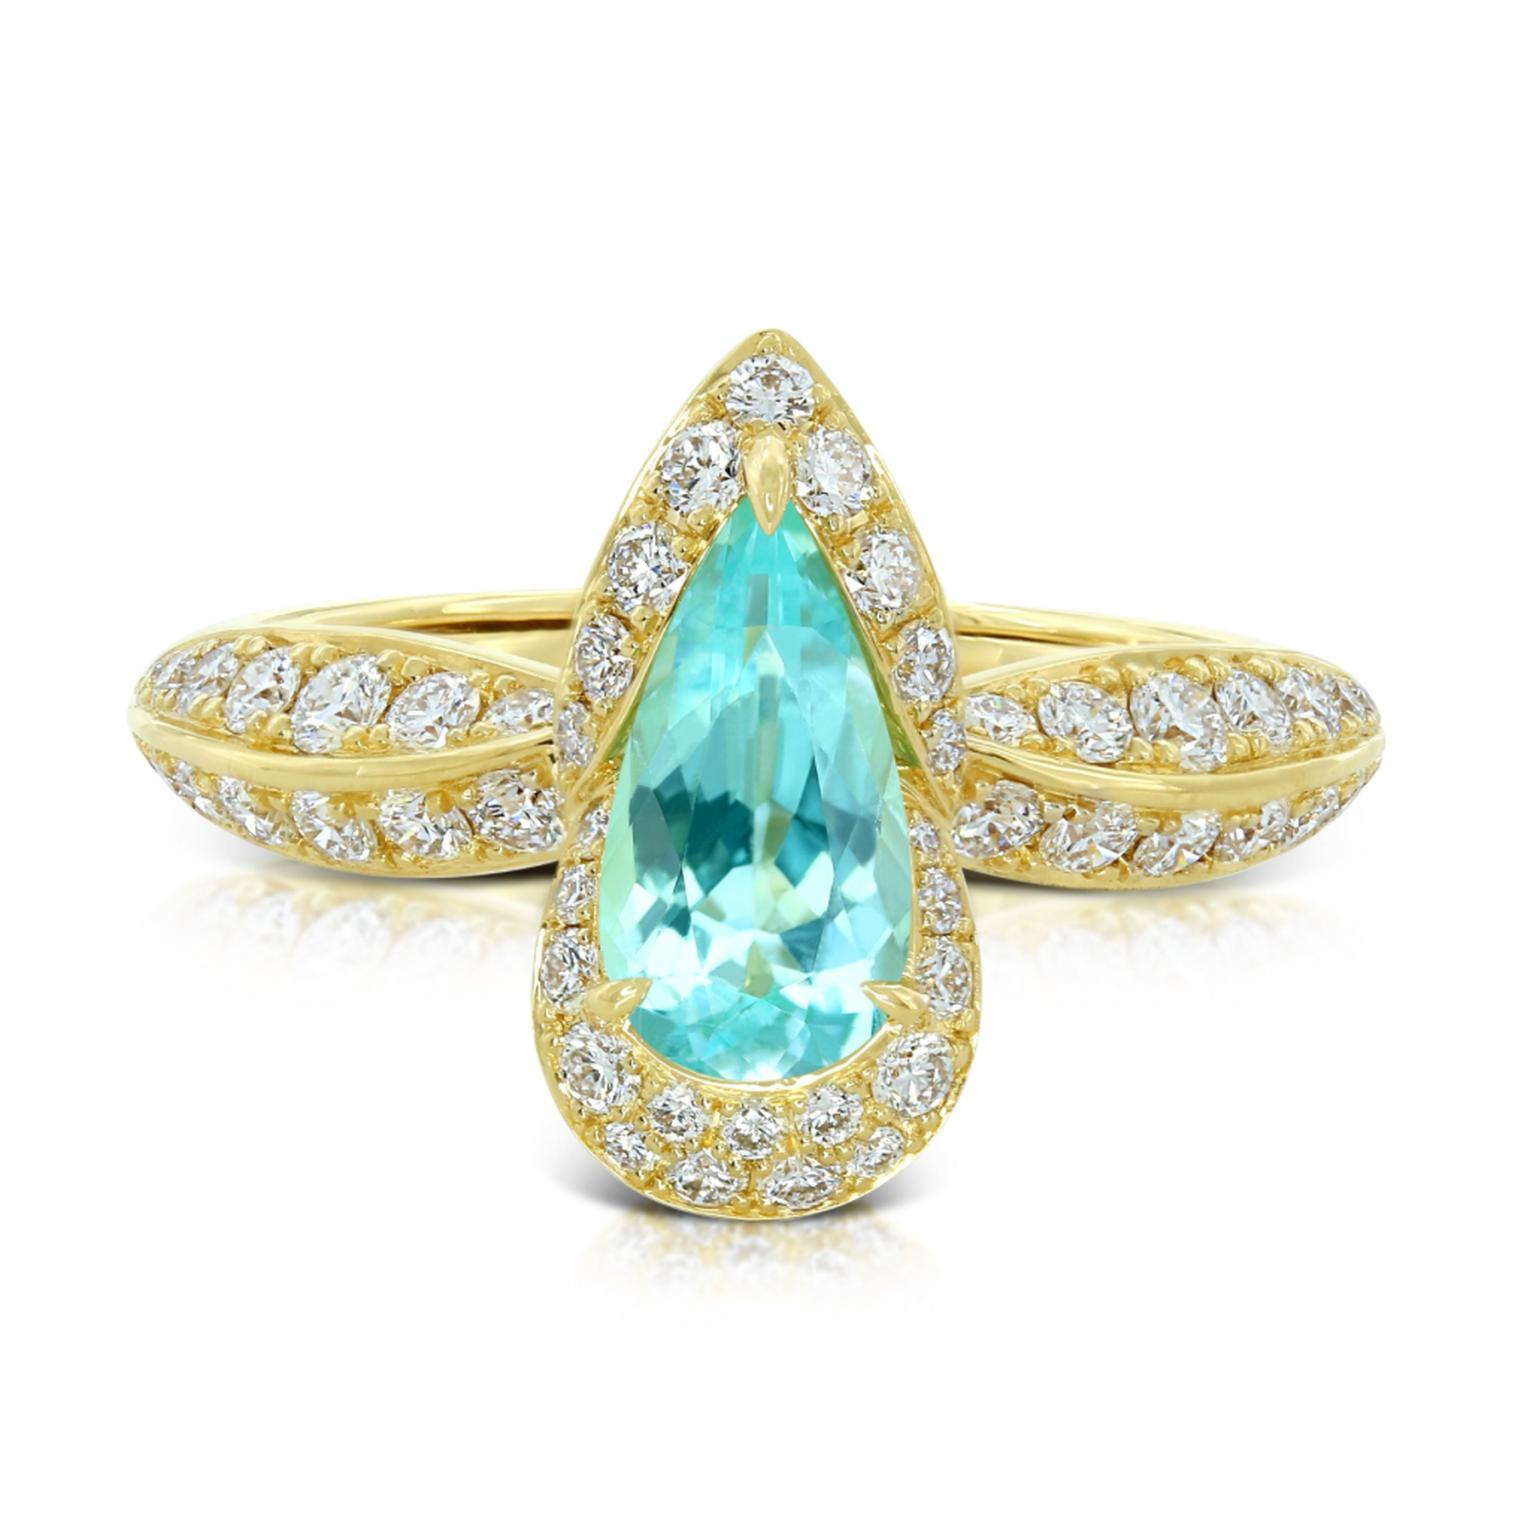 Kat Florence pear shaped Brazilian Paraiba tourmaline ring